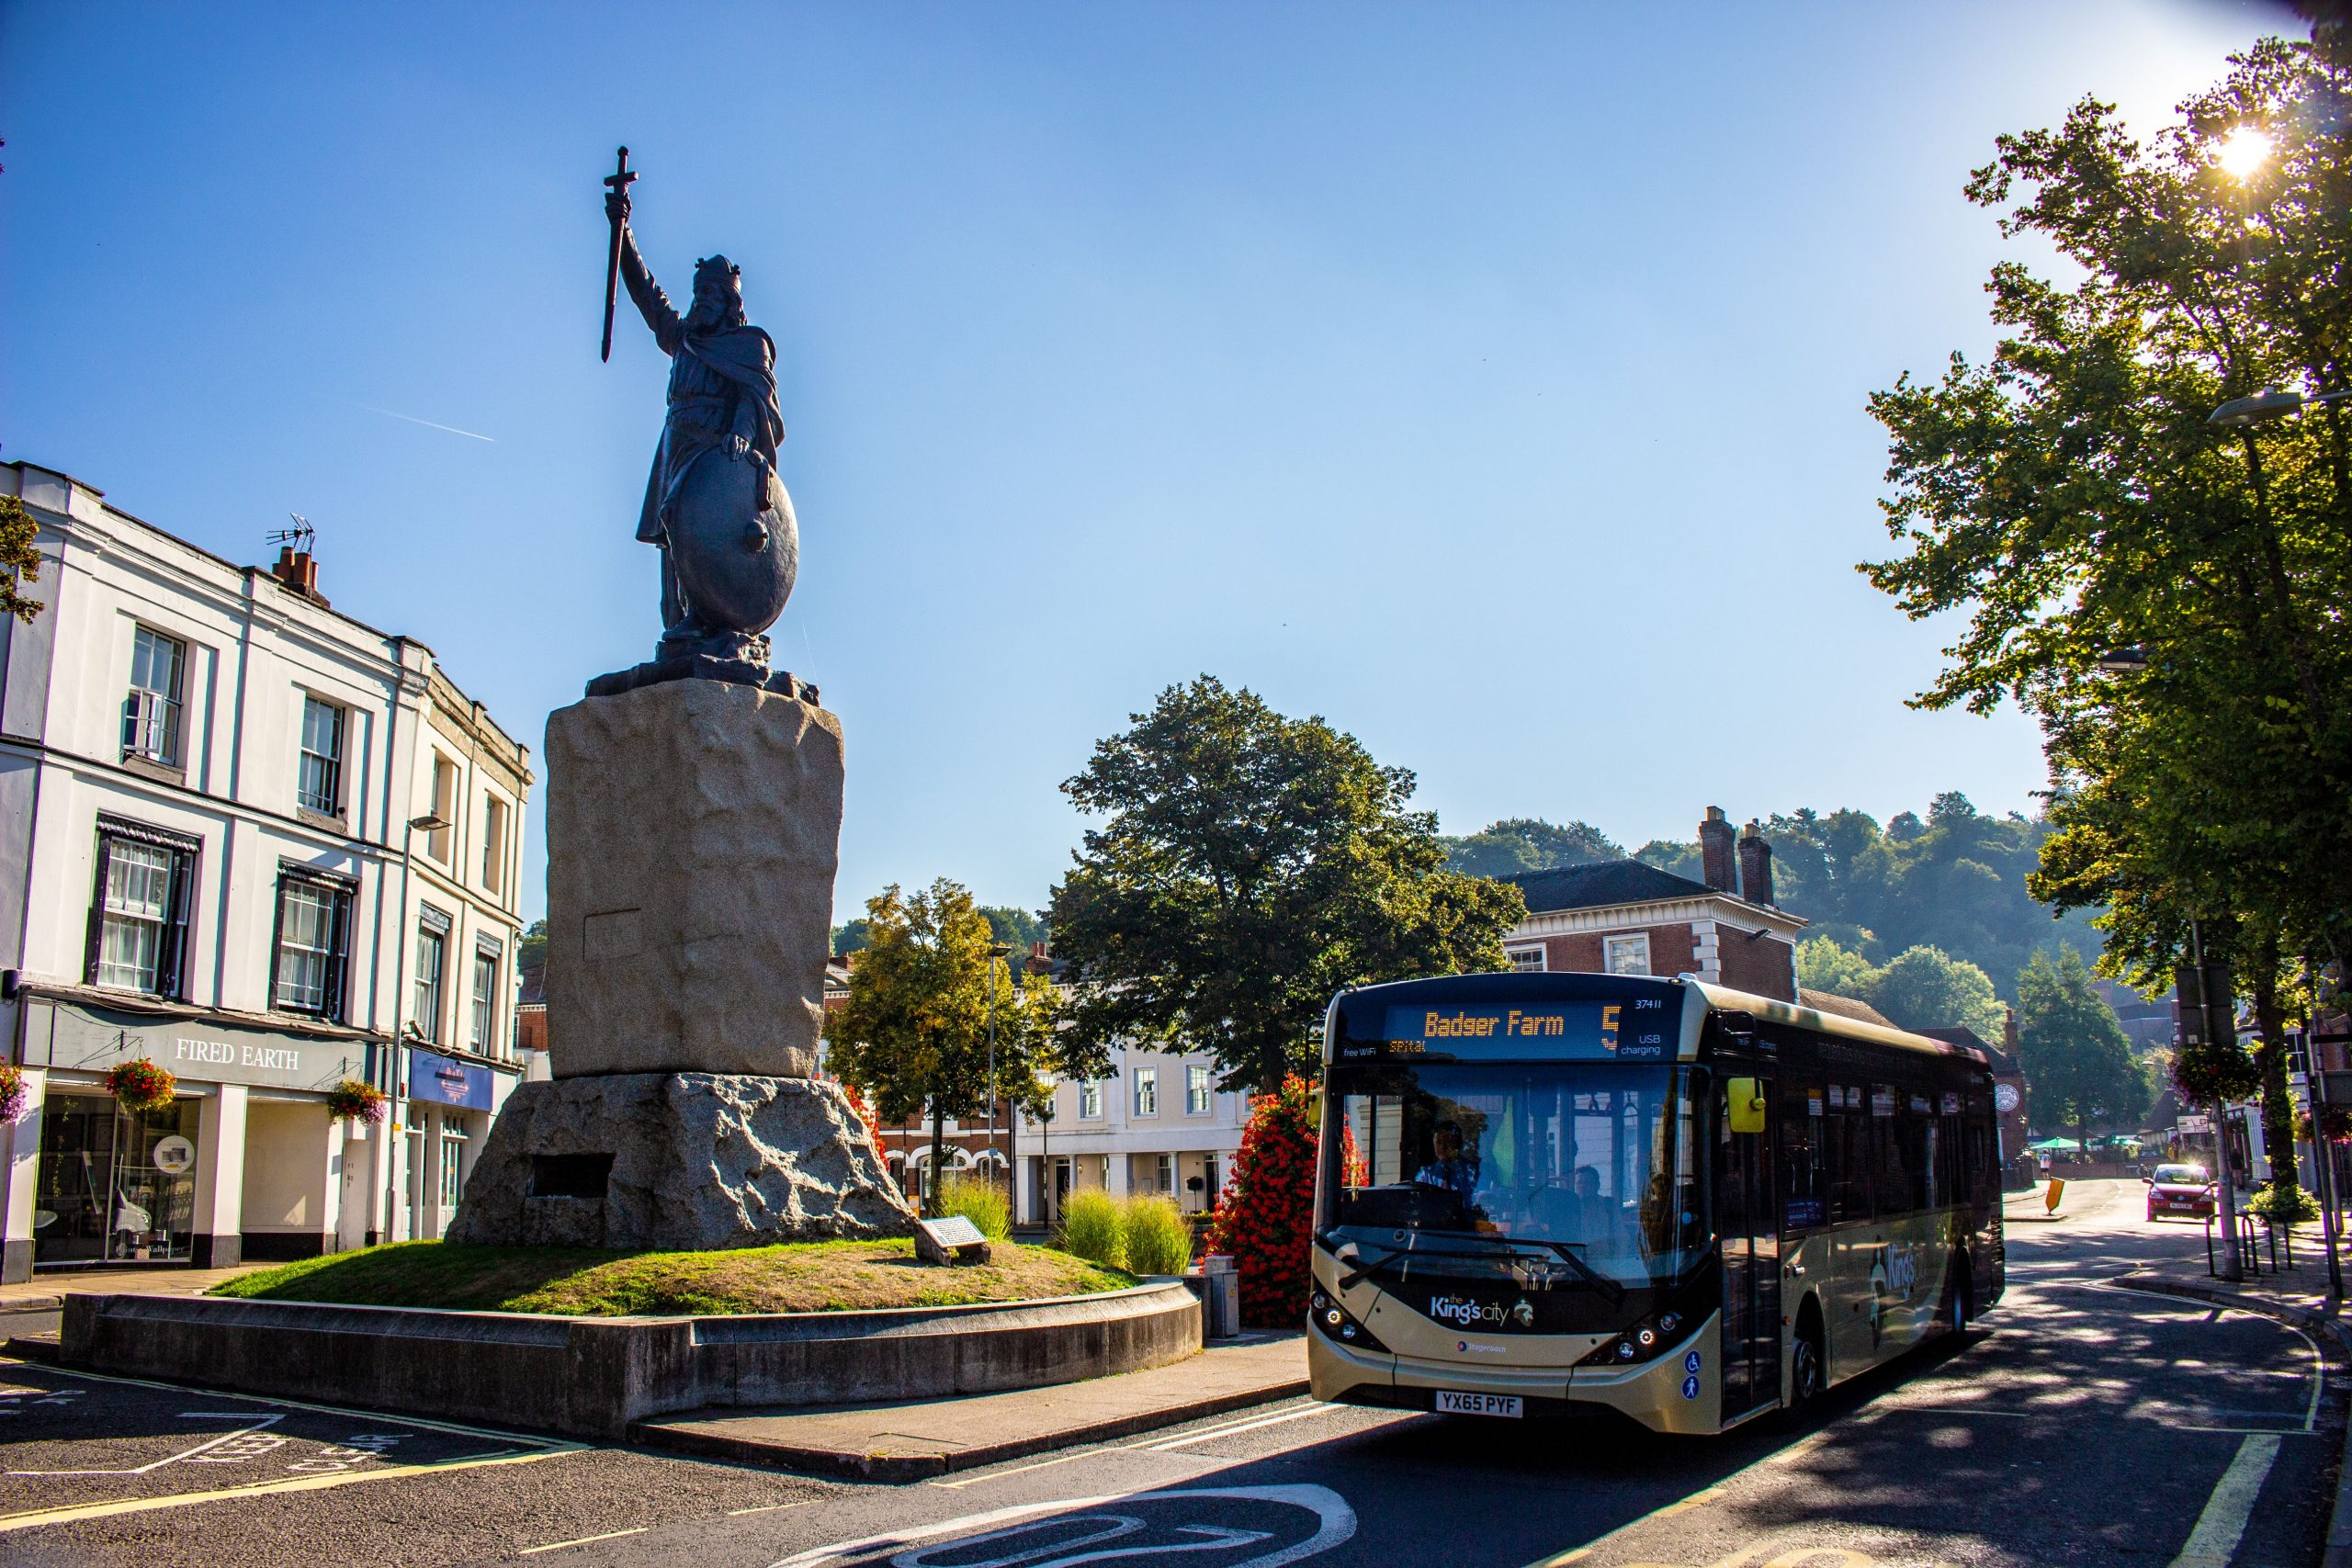 Photo of the King Alfred statue with a bus next to it